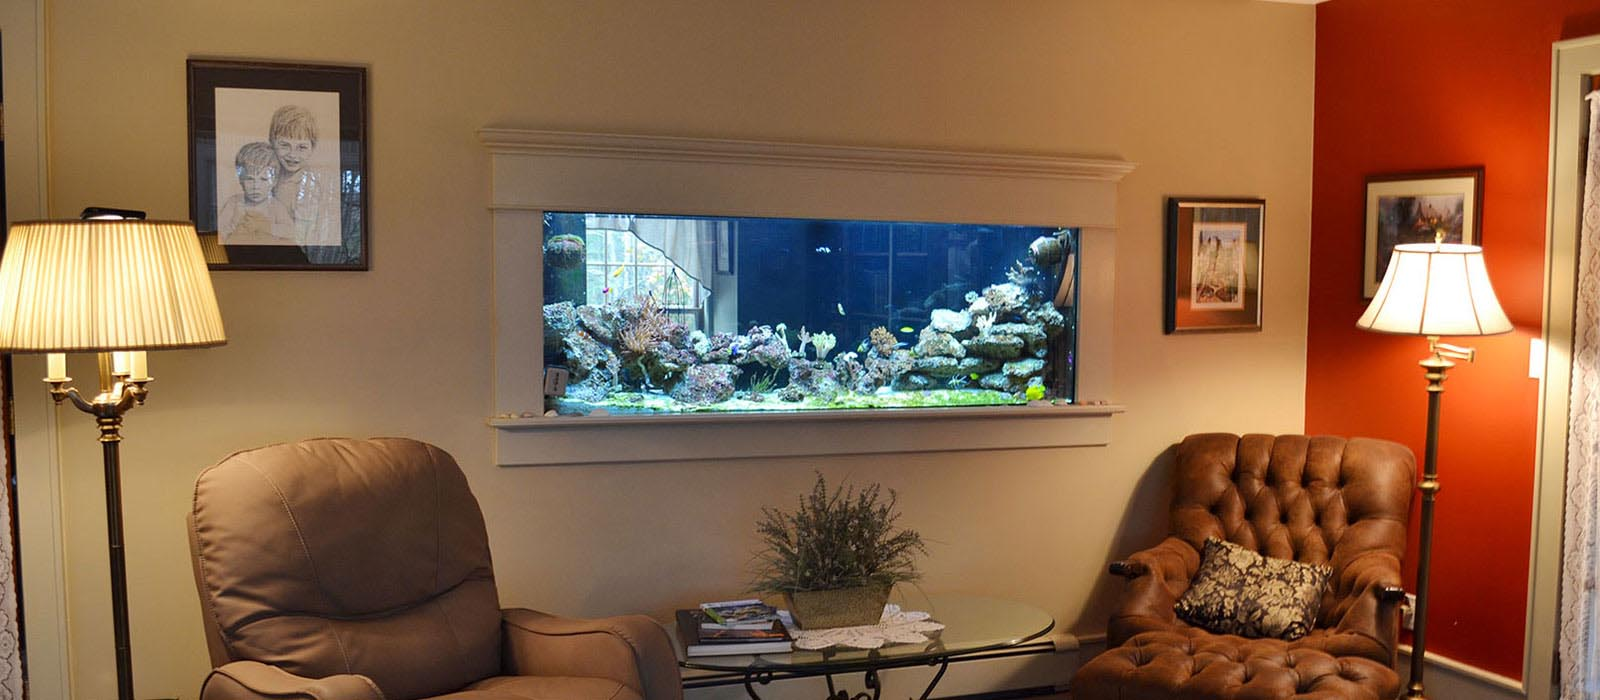 Aquarium Wall Mounted Fish Tank HF02